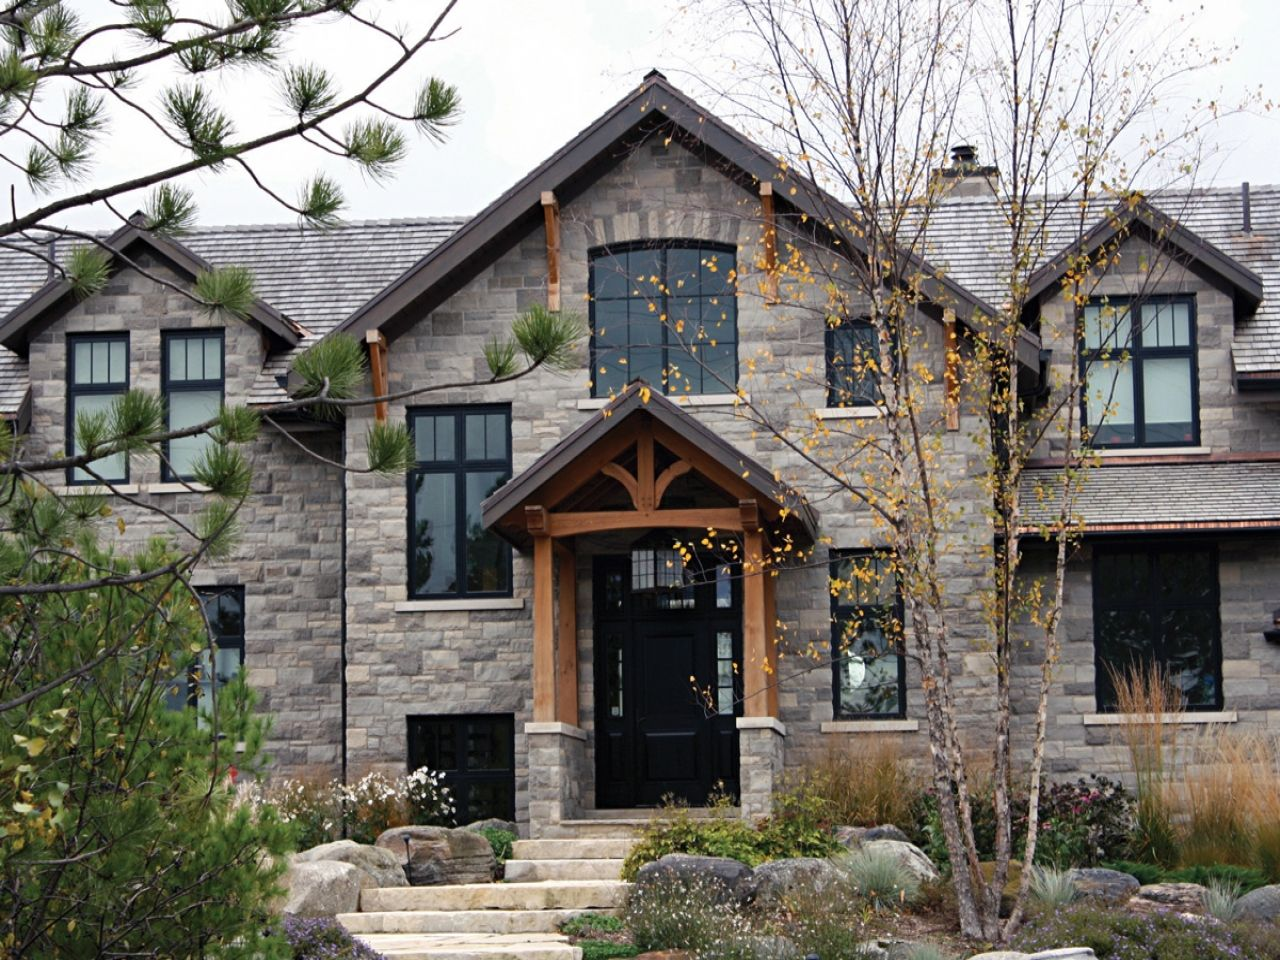 20 Most Beautiful Home Exterior Ideas With Natural Stones That Have Awesome Facades In 2020 Stone Veneer Exterior House Exterior Stone Facade